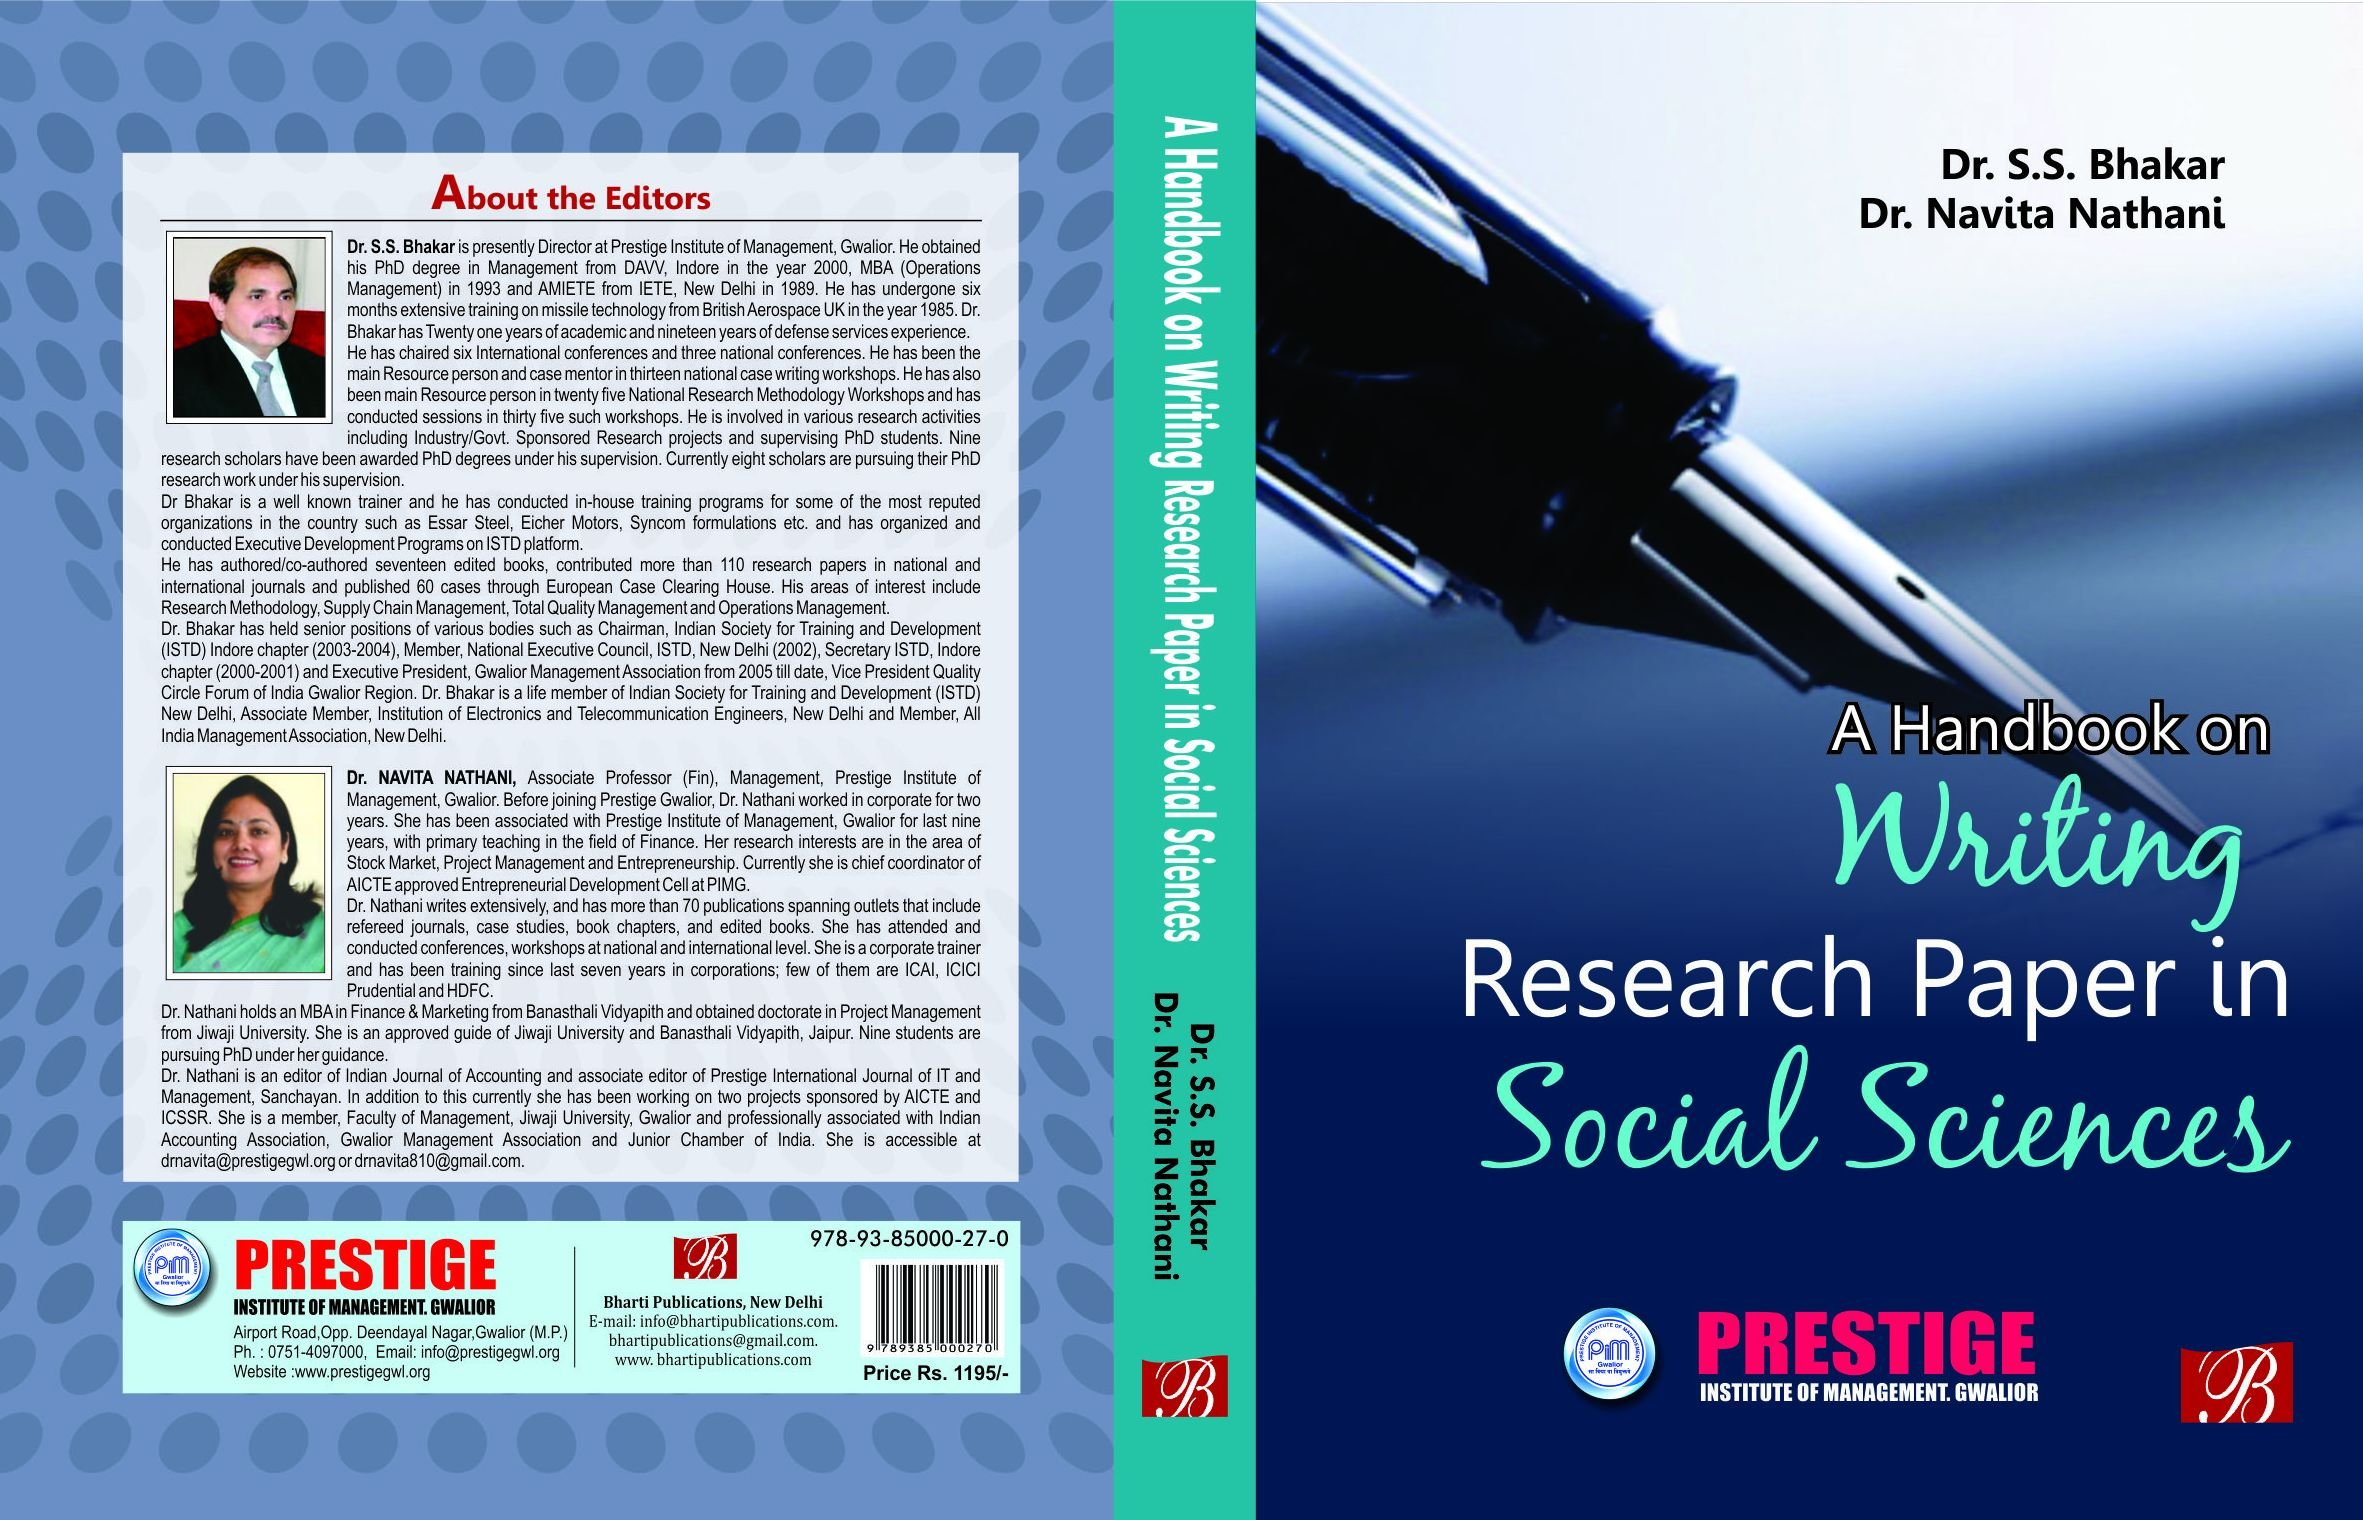 004 Research Paper Handbook On Writing In Social Sciences Stunning A Full